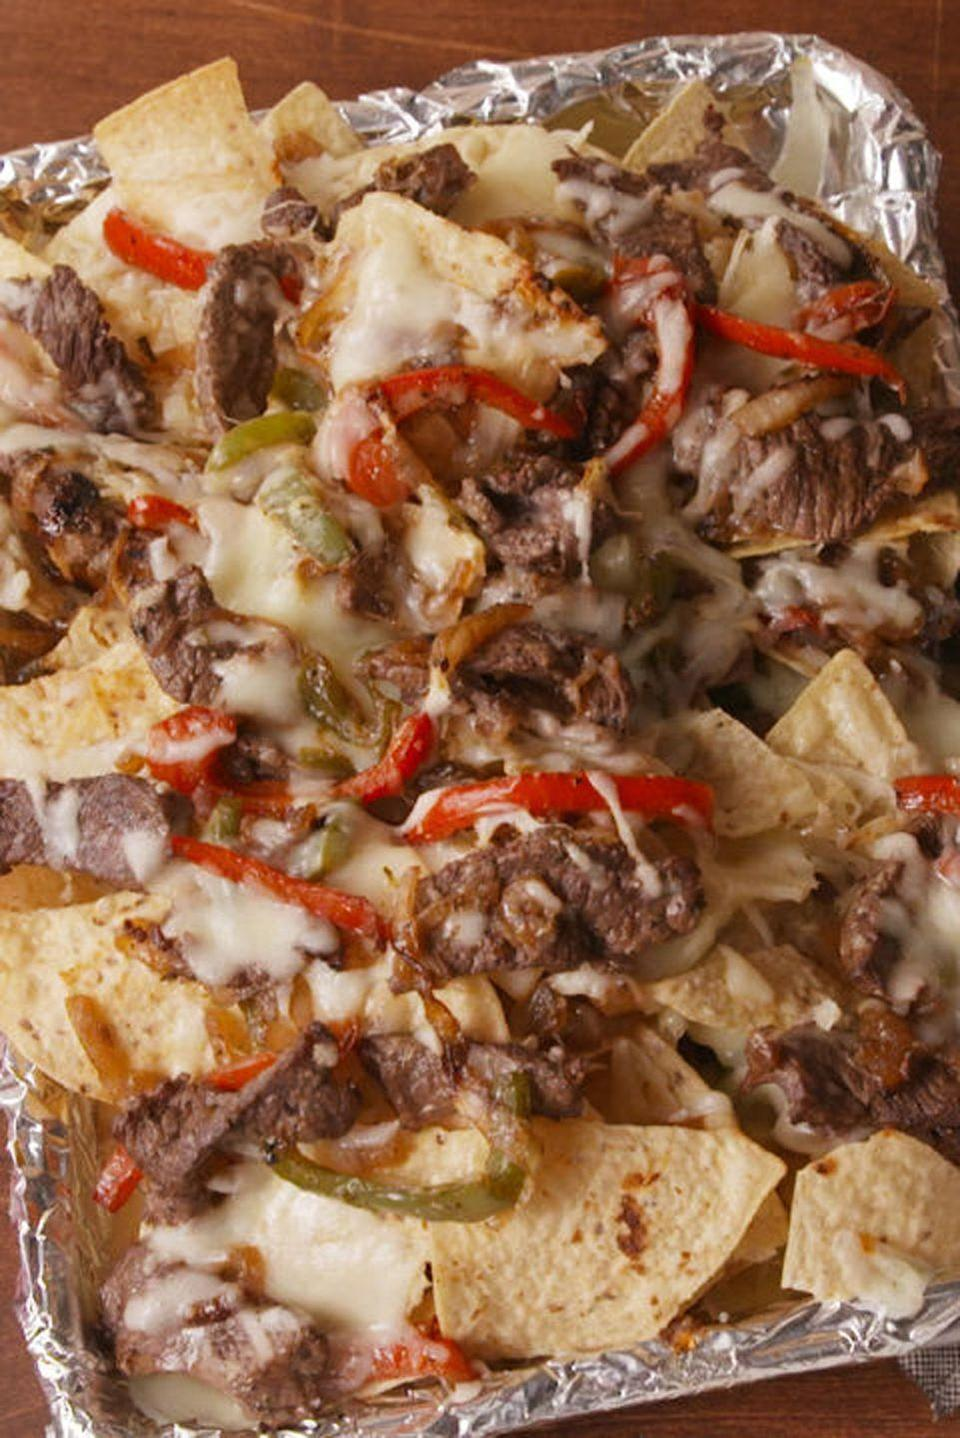 """<p>Step up your nacho game this year by adding a delicious Philly cheesesteak twist — just add steak, peppers, and onions, along with the best cheeses.</p><p><em><a href=""""http://www.delish.com/cooking/recipe-ideas/recipes/a51879/philly-cheesesteak-nachos-recipe/"""" rel=""""nofollow noopener"""" target=""""_blank"""" data-ylk=""""slk:Get the recipe from Delish »"""" class=""""link rapid-noclick-resp"""">Get the recipe from Delish » </a></em></p><p><strong>RELATED: </strong><a href=""""https://www.goodhousekeeping.com/health/diet-nutrition/g28829538/healthiest-cheese/"""" rel=""""nofollow noopener"""" target=""""_blank"""" data-ylk=""""slk:The Healthiest Cheeses You Can Buy, According to a Registered Dietitian"""" class=""""link rapid-noclick-resp"""">The Healthiest Cheeses You Can Buy, According to a Registered Dietitian</a></p>"""